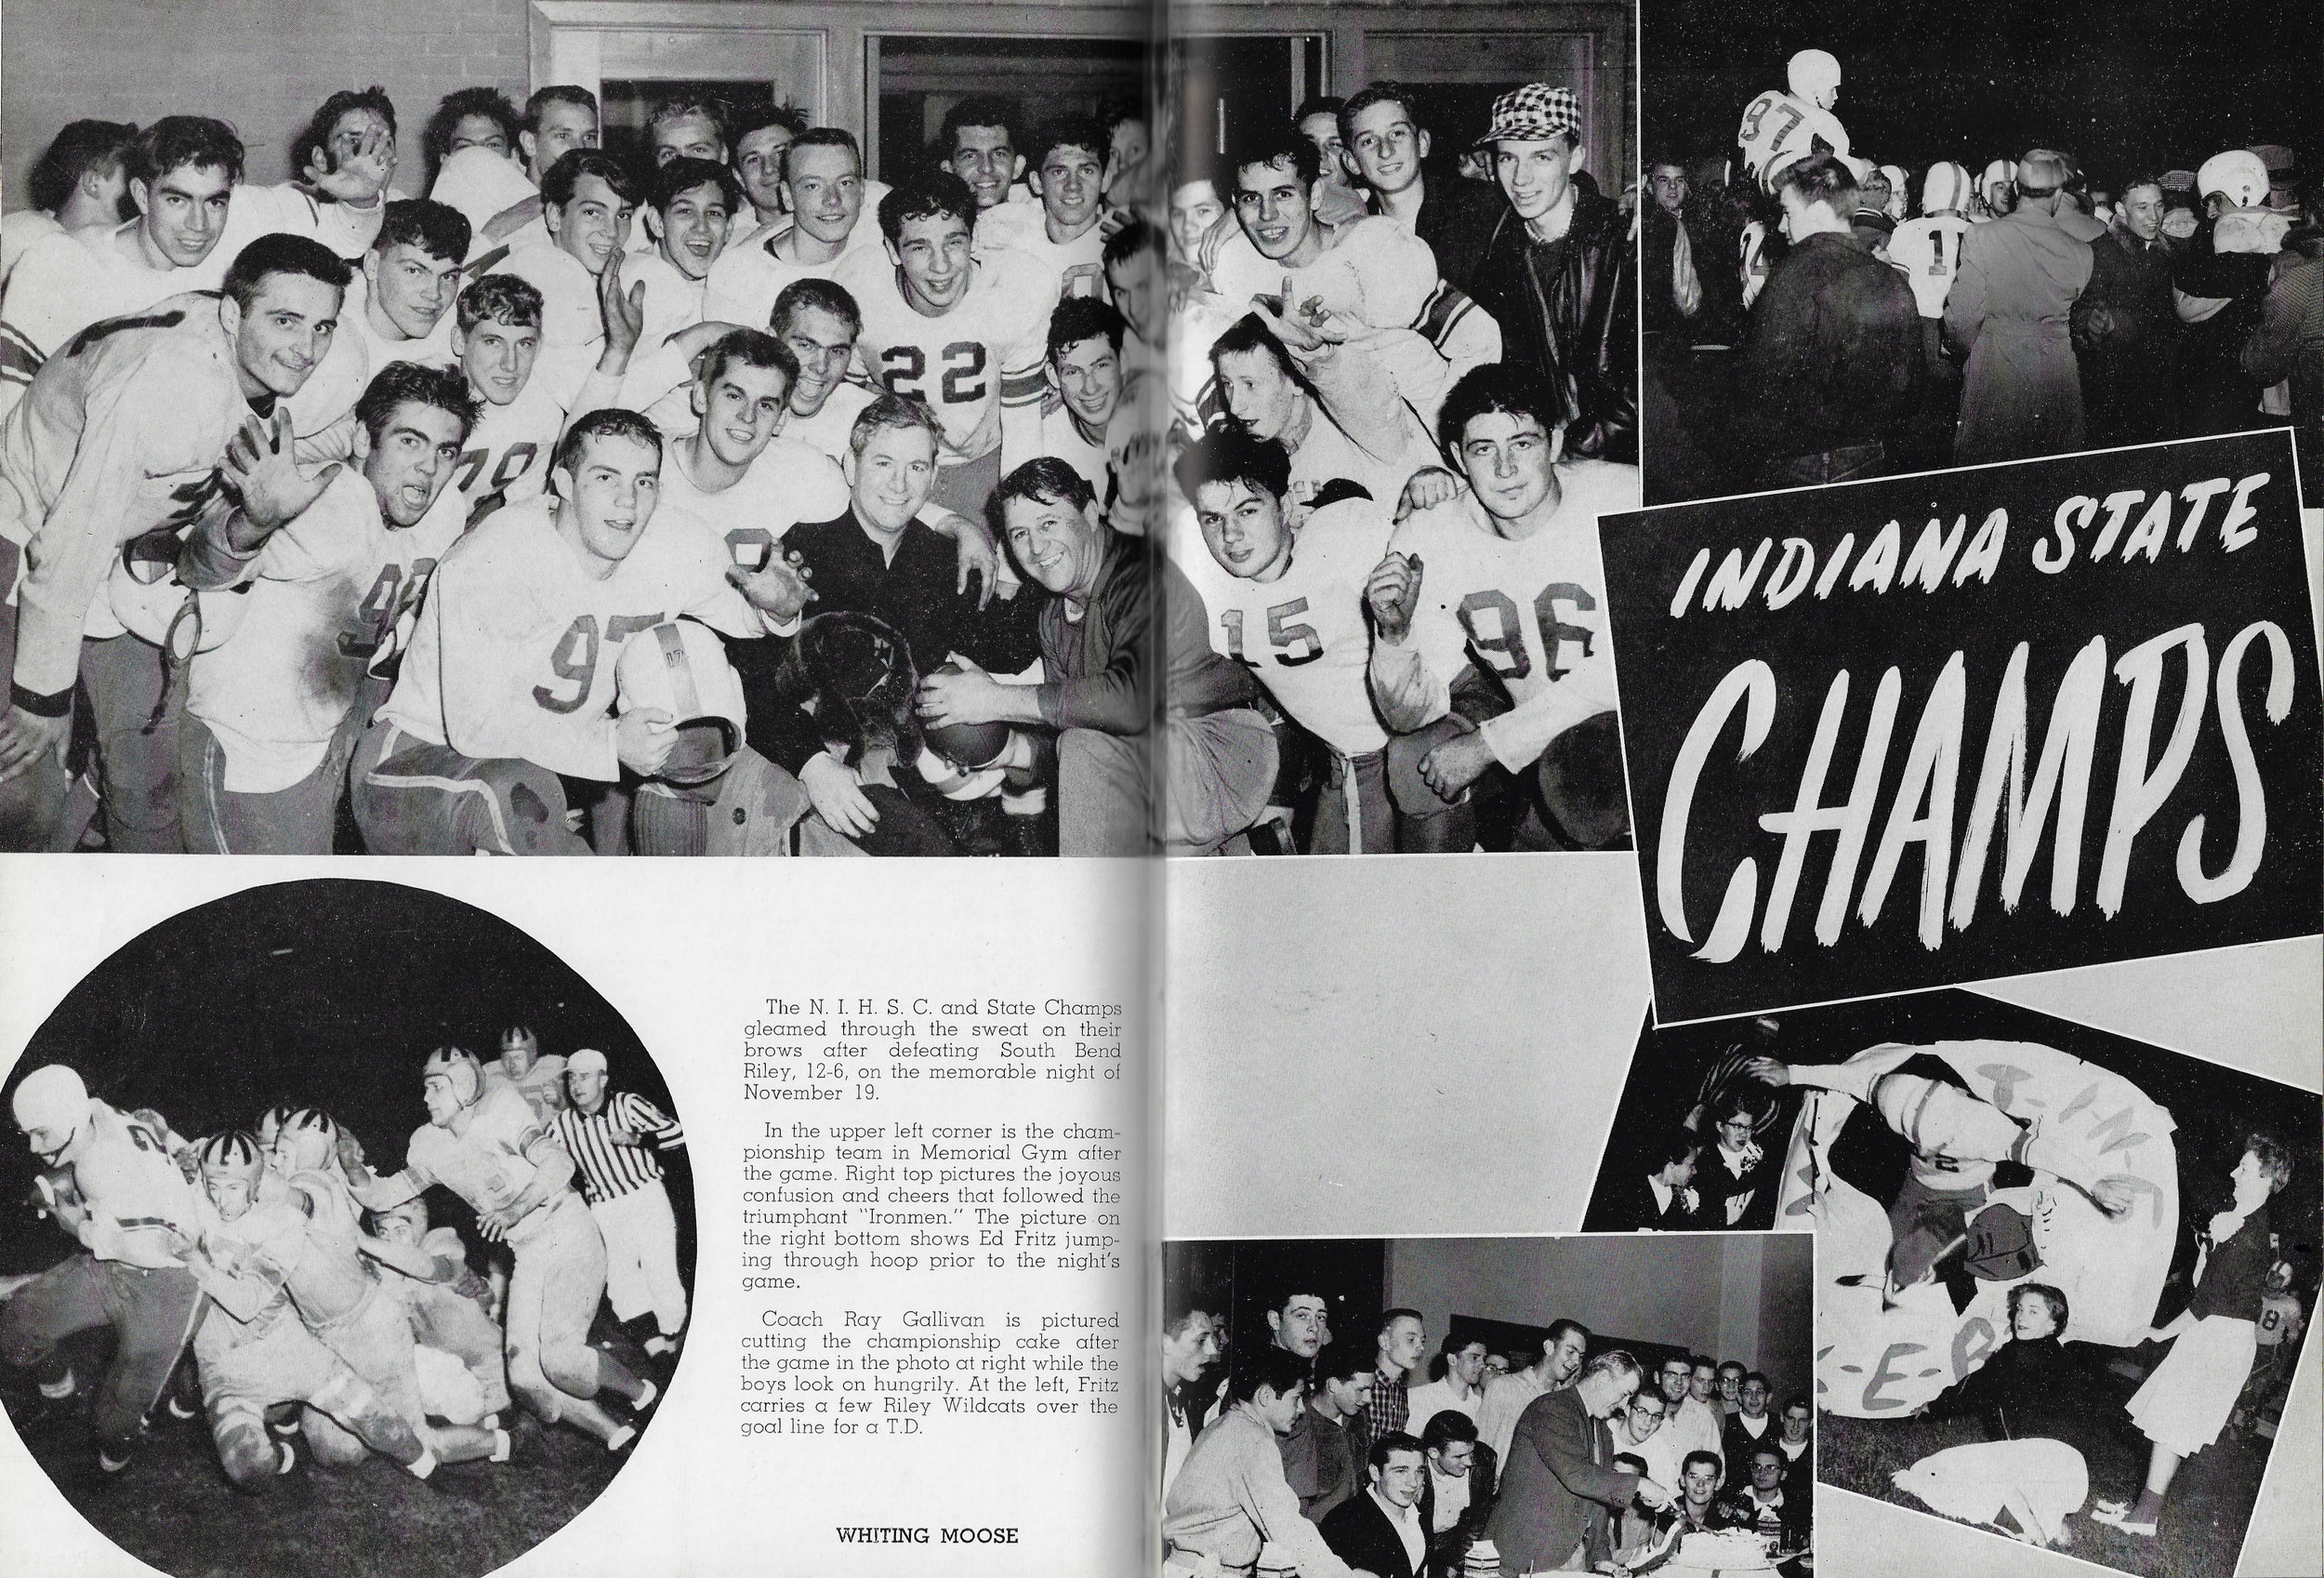 Two pages from the 1955 Reflector, the Whiting High School Yearbook, celebrating the championship 1954 football team.